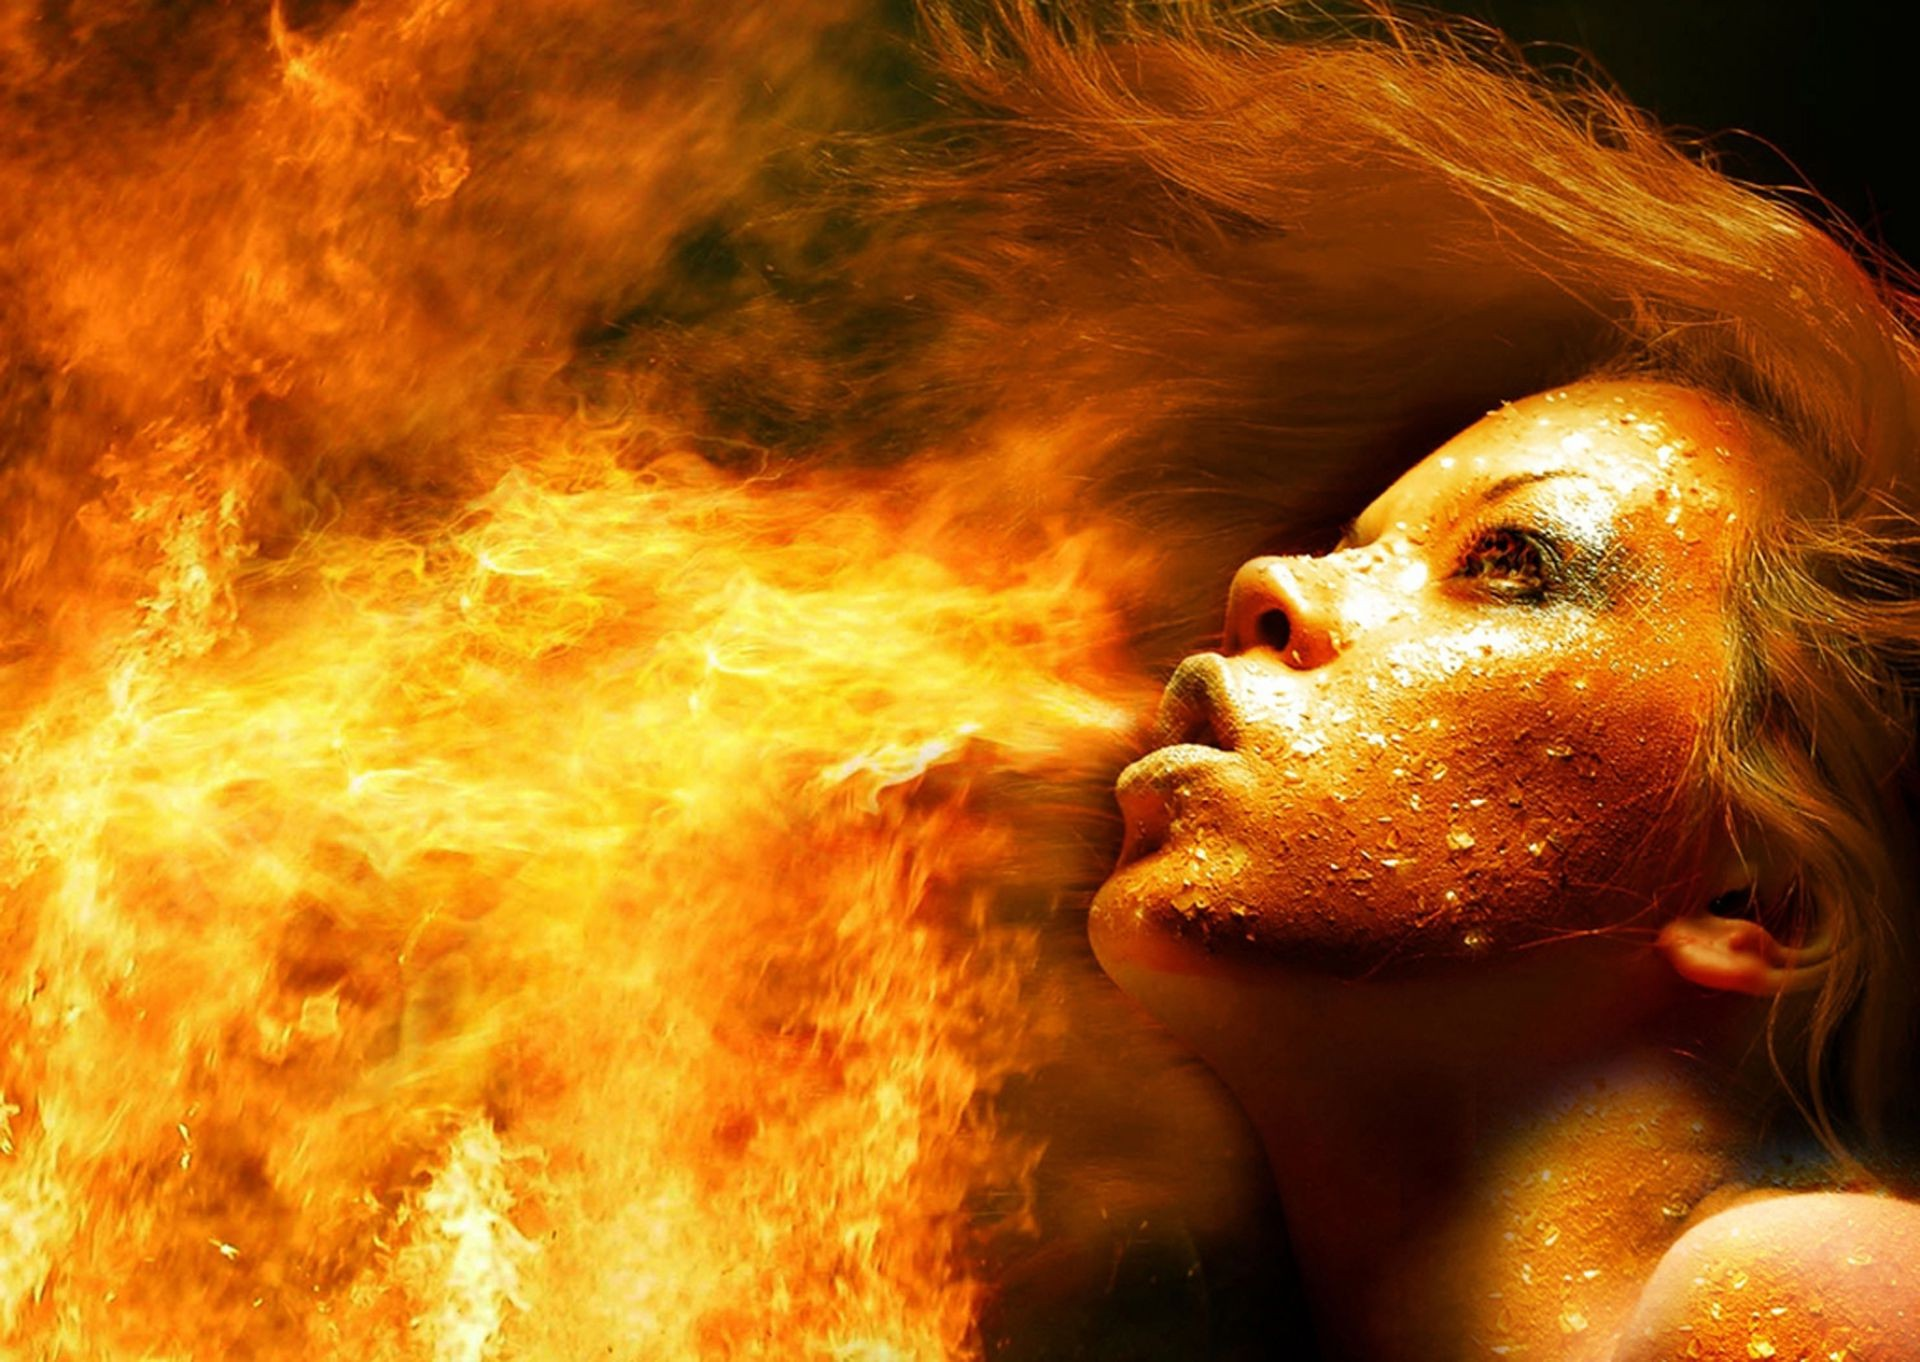 fire flame hot ocean smoke portrait magic art surreal astronomy